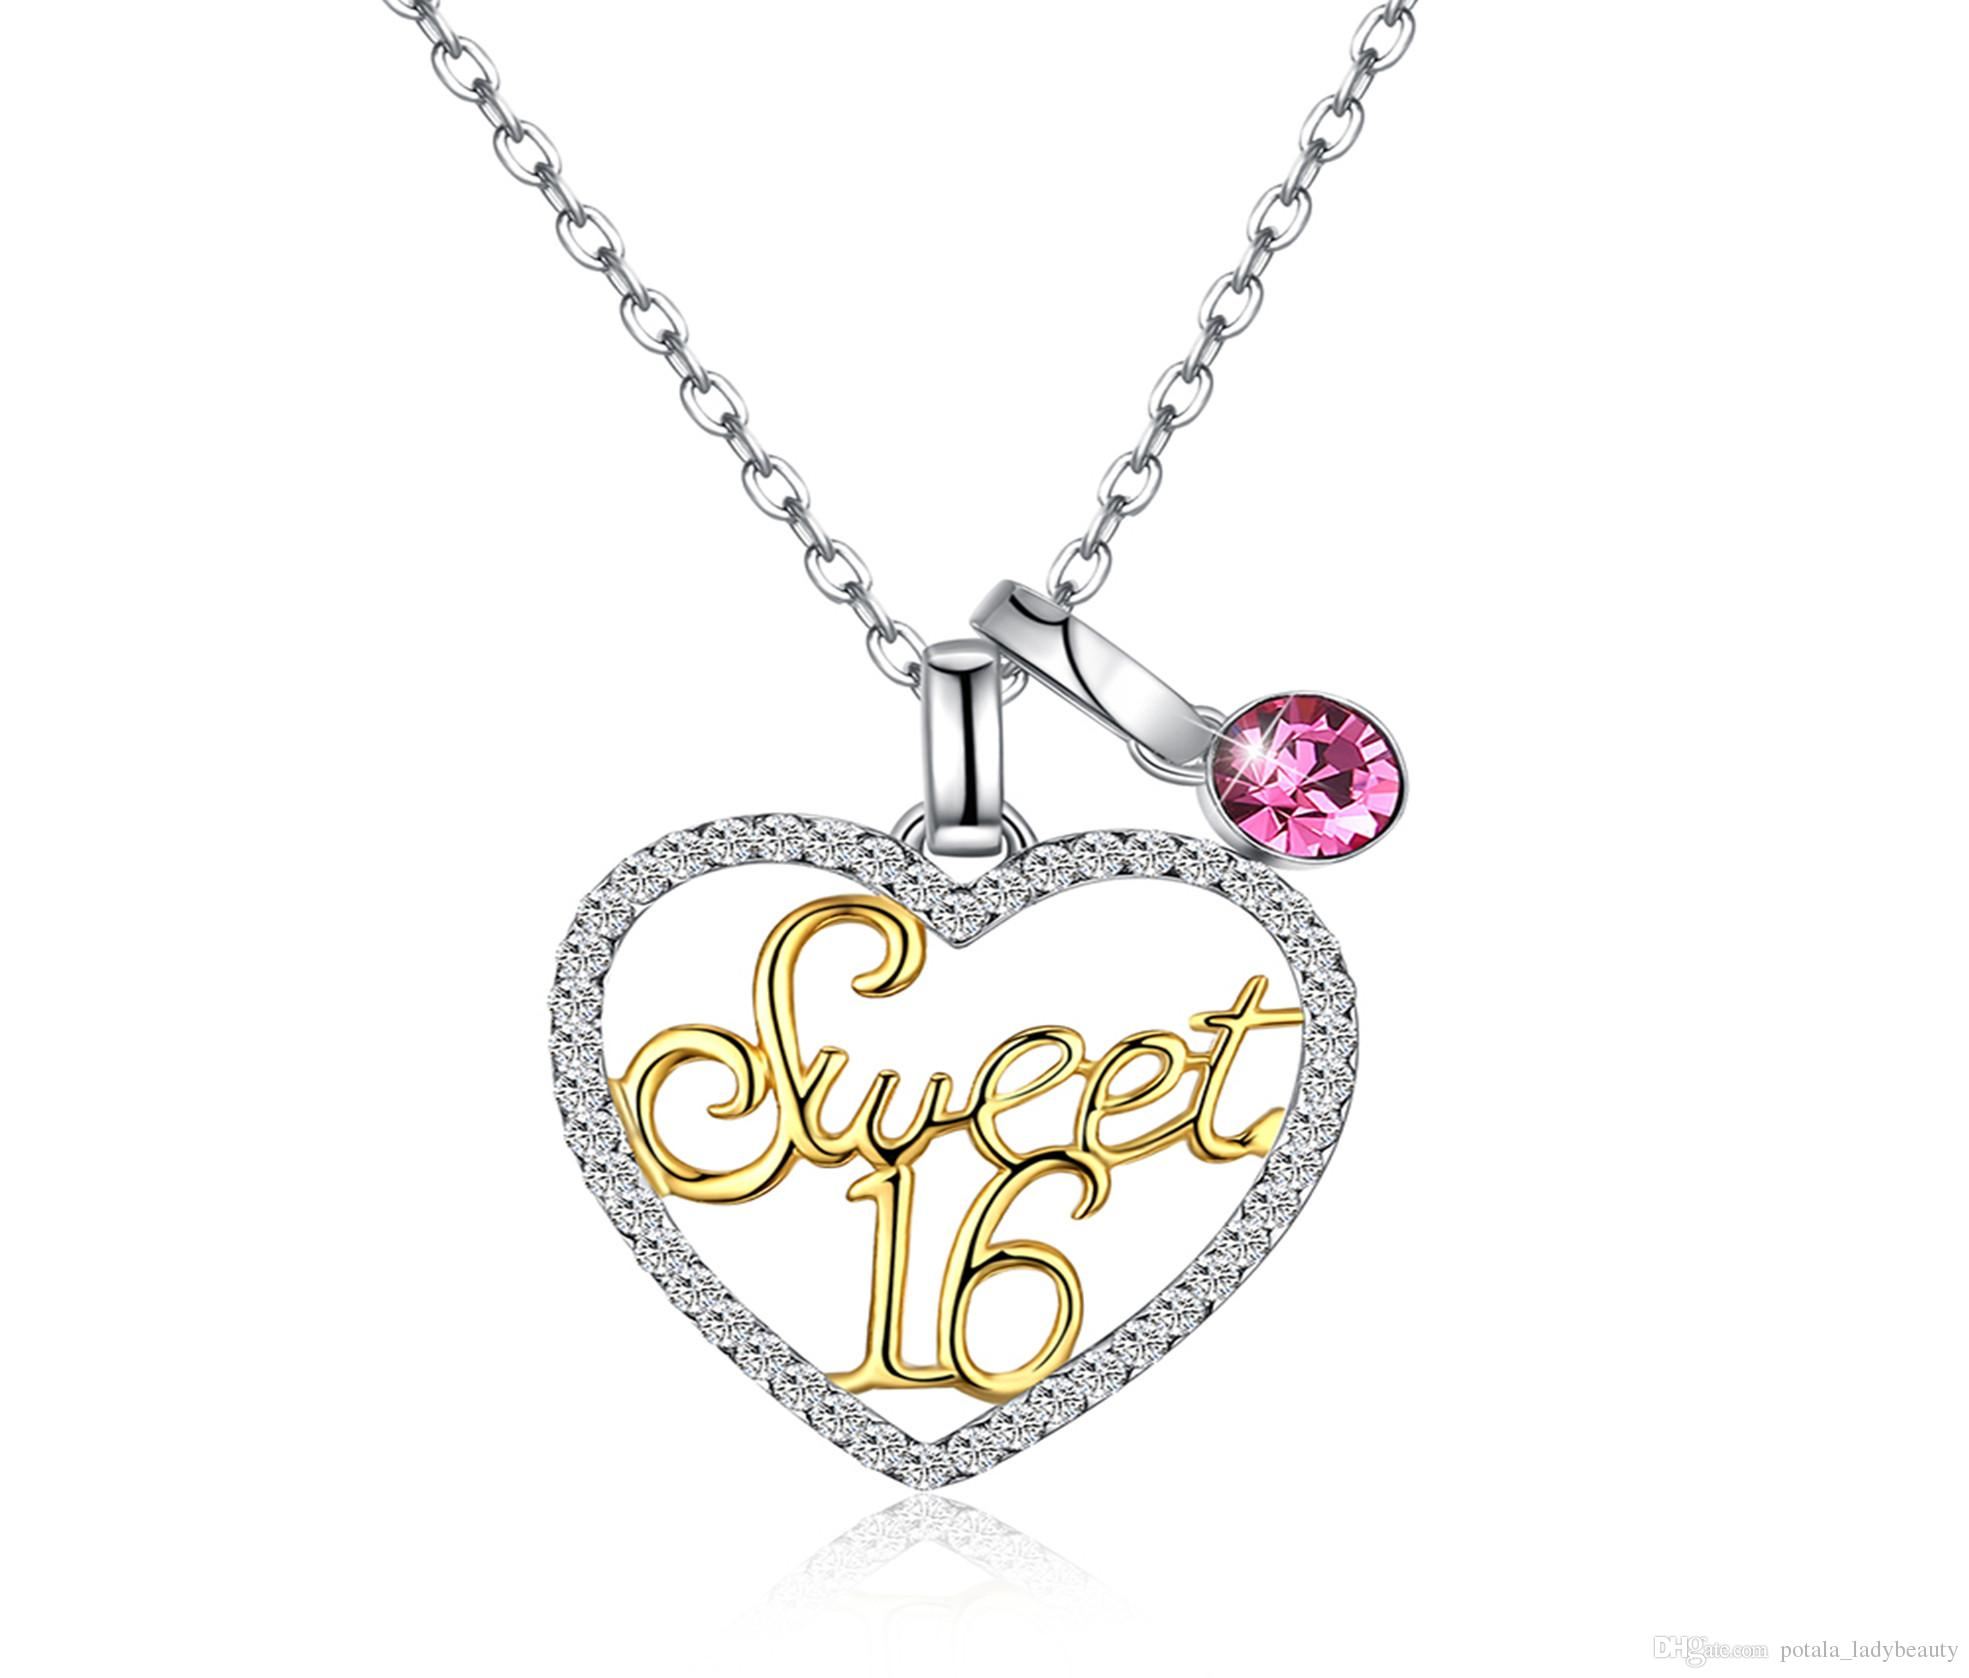 Pendant Necklaces Crystal From Swarovski Element S925 Sterling Silver  Variety Of Wearing Heart Shaped Sweet 16 Birthday Party Gift Potala316 Intended For Most Current Sparkling Infinity Locket Element Necklaces (Gallery 19 of 25)